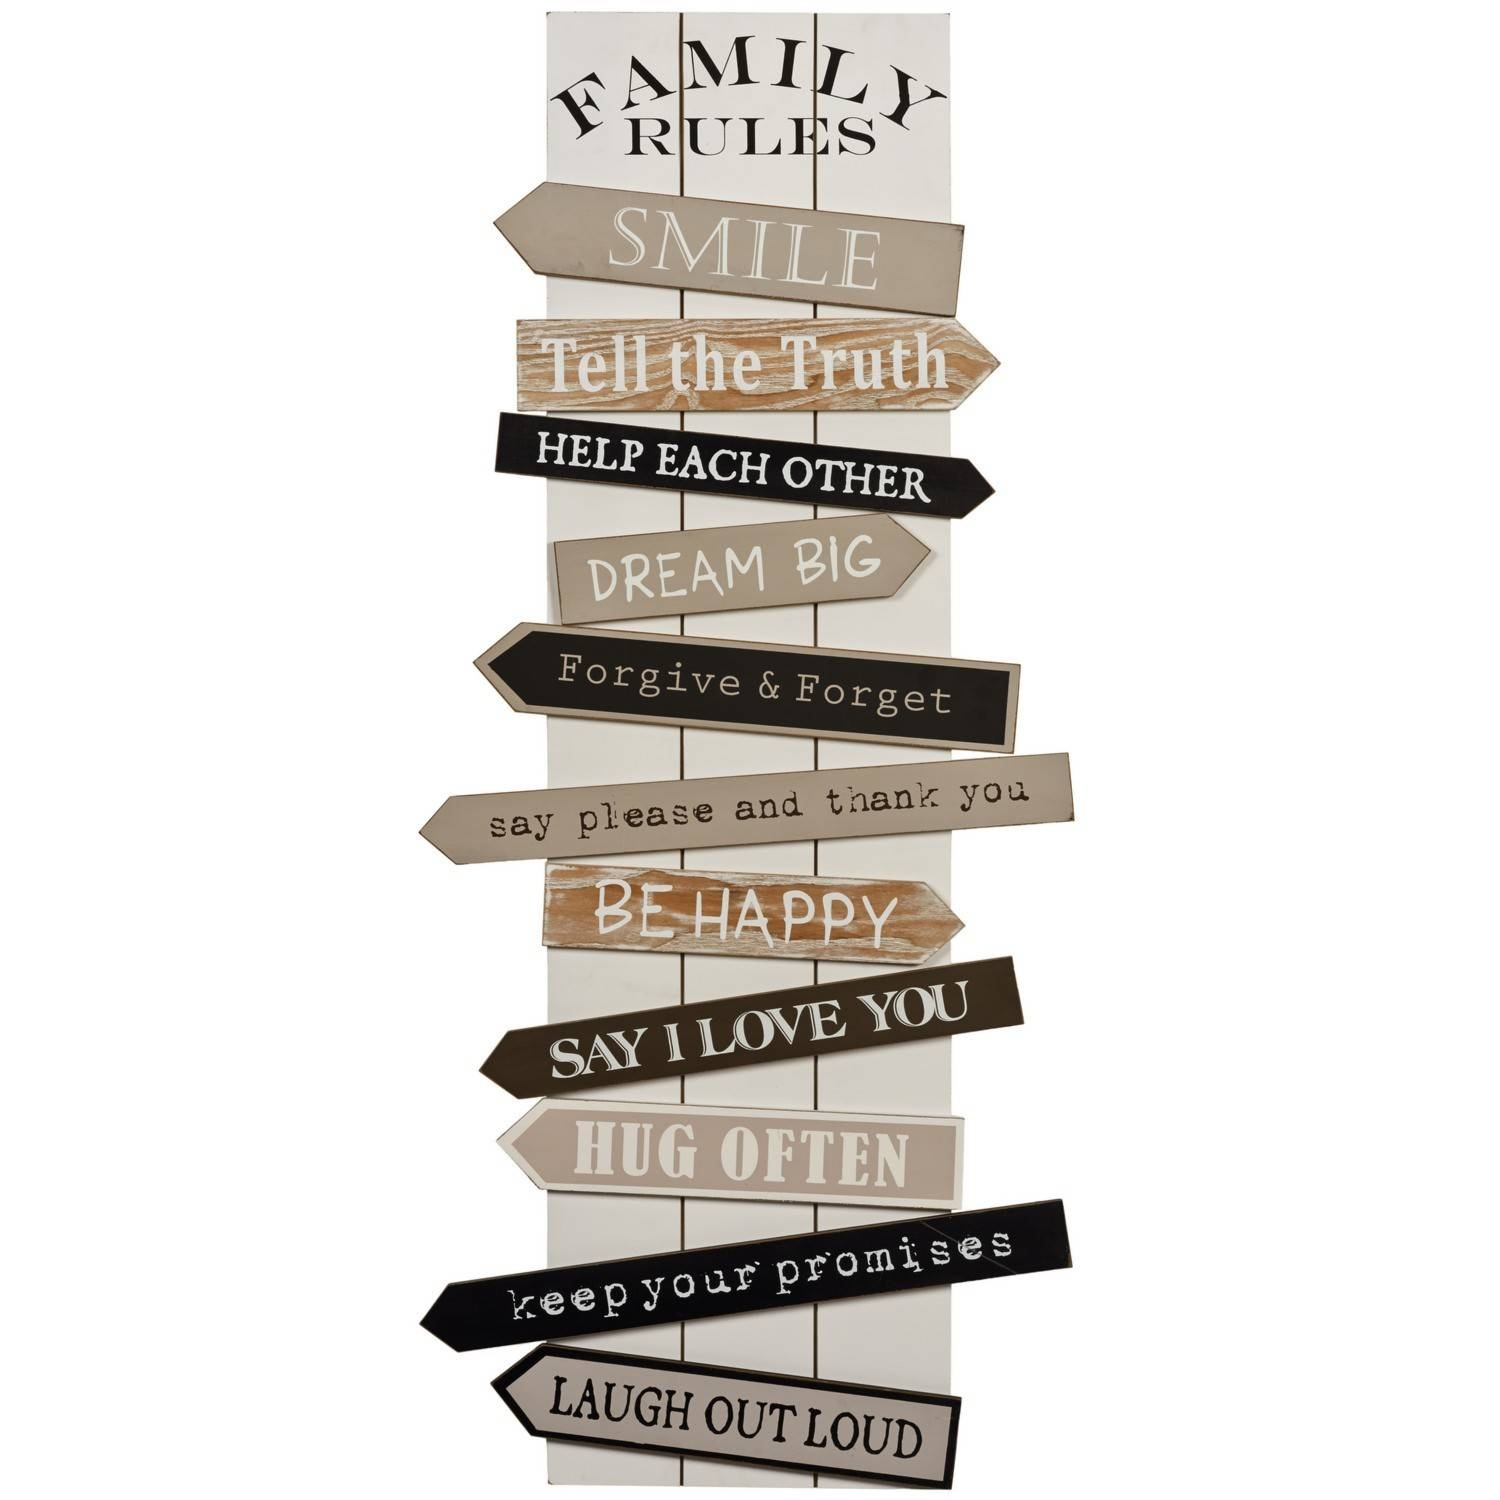 Wall Art Designs: Family Rules Wall Art Vintage Wall Art Wooden Intended For Current Wooden Word Wall Art (View 13 of 30)